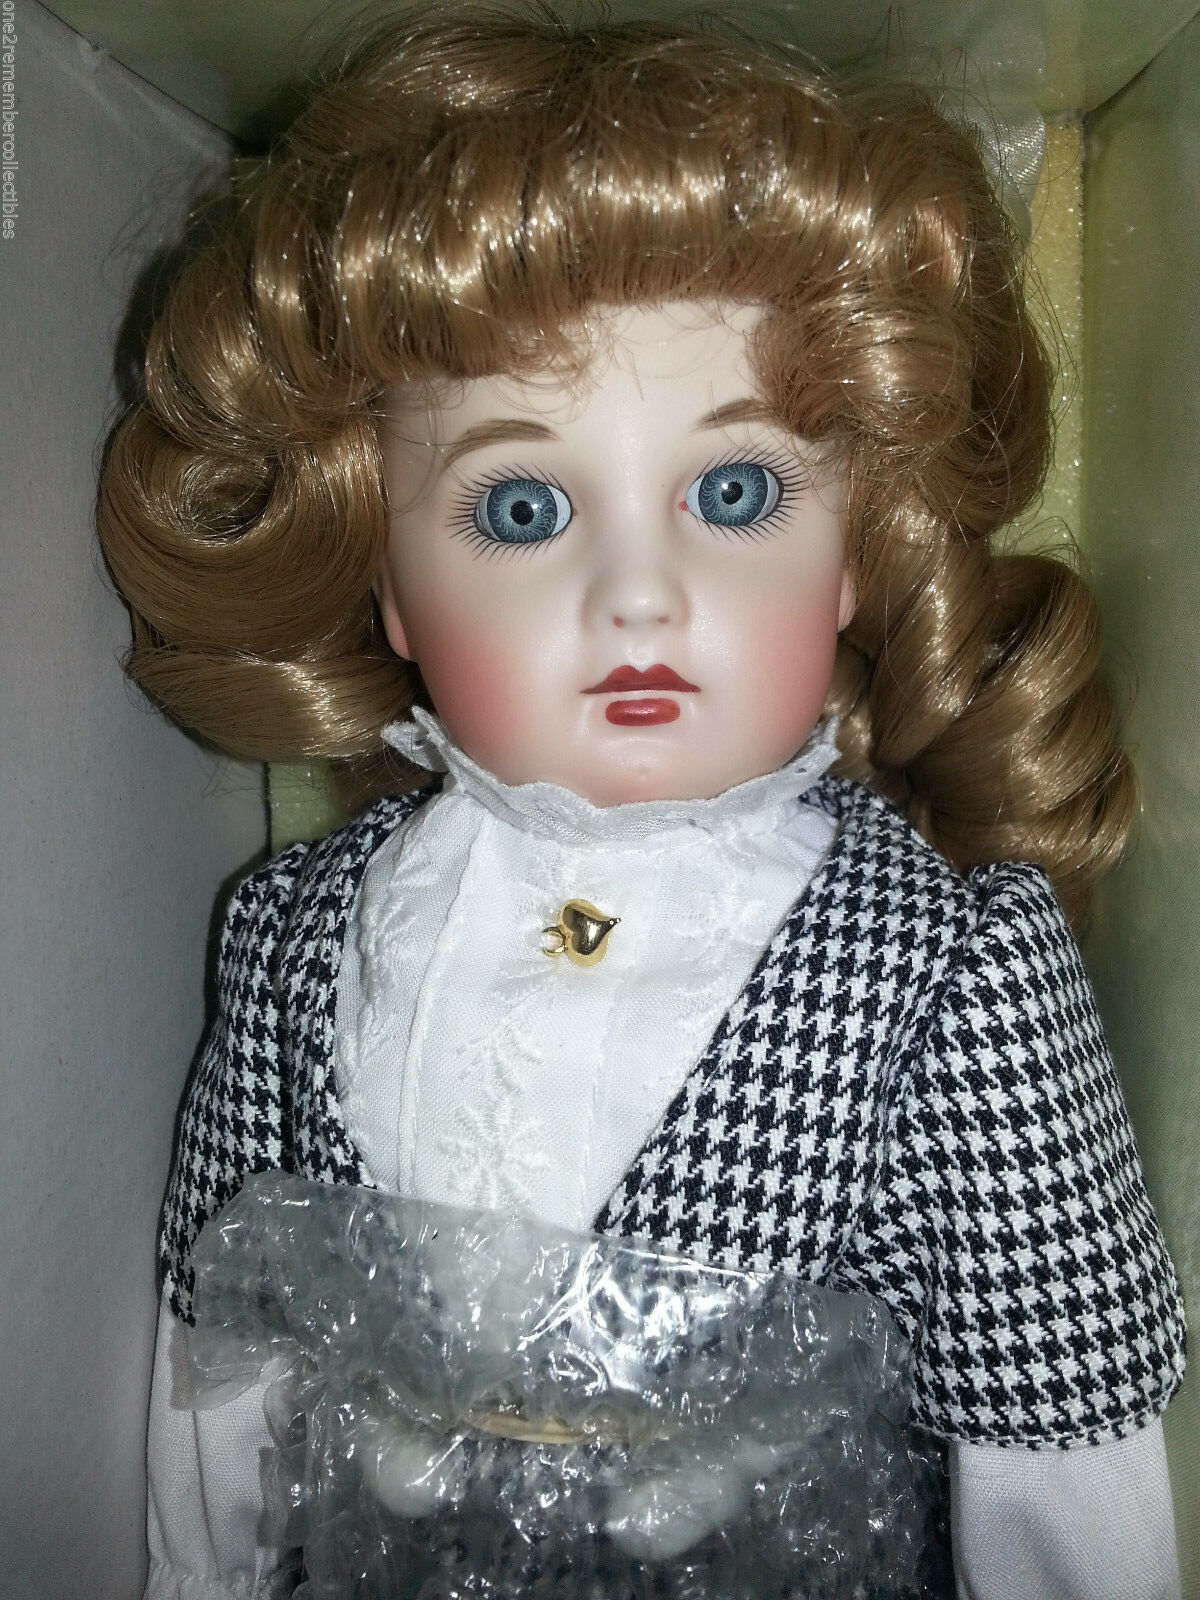 Htuttimark VICTORIAN MEMORIES PORCELAIN bambola 11  Limited Ed  rossoHEAD AgreeAIL nuovo  ordinare on-line